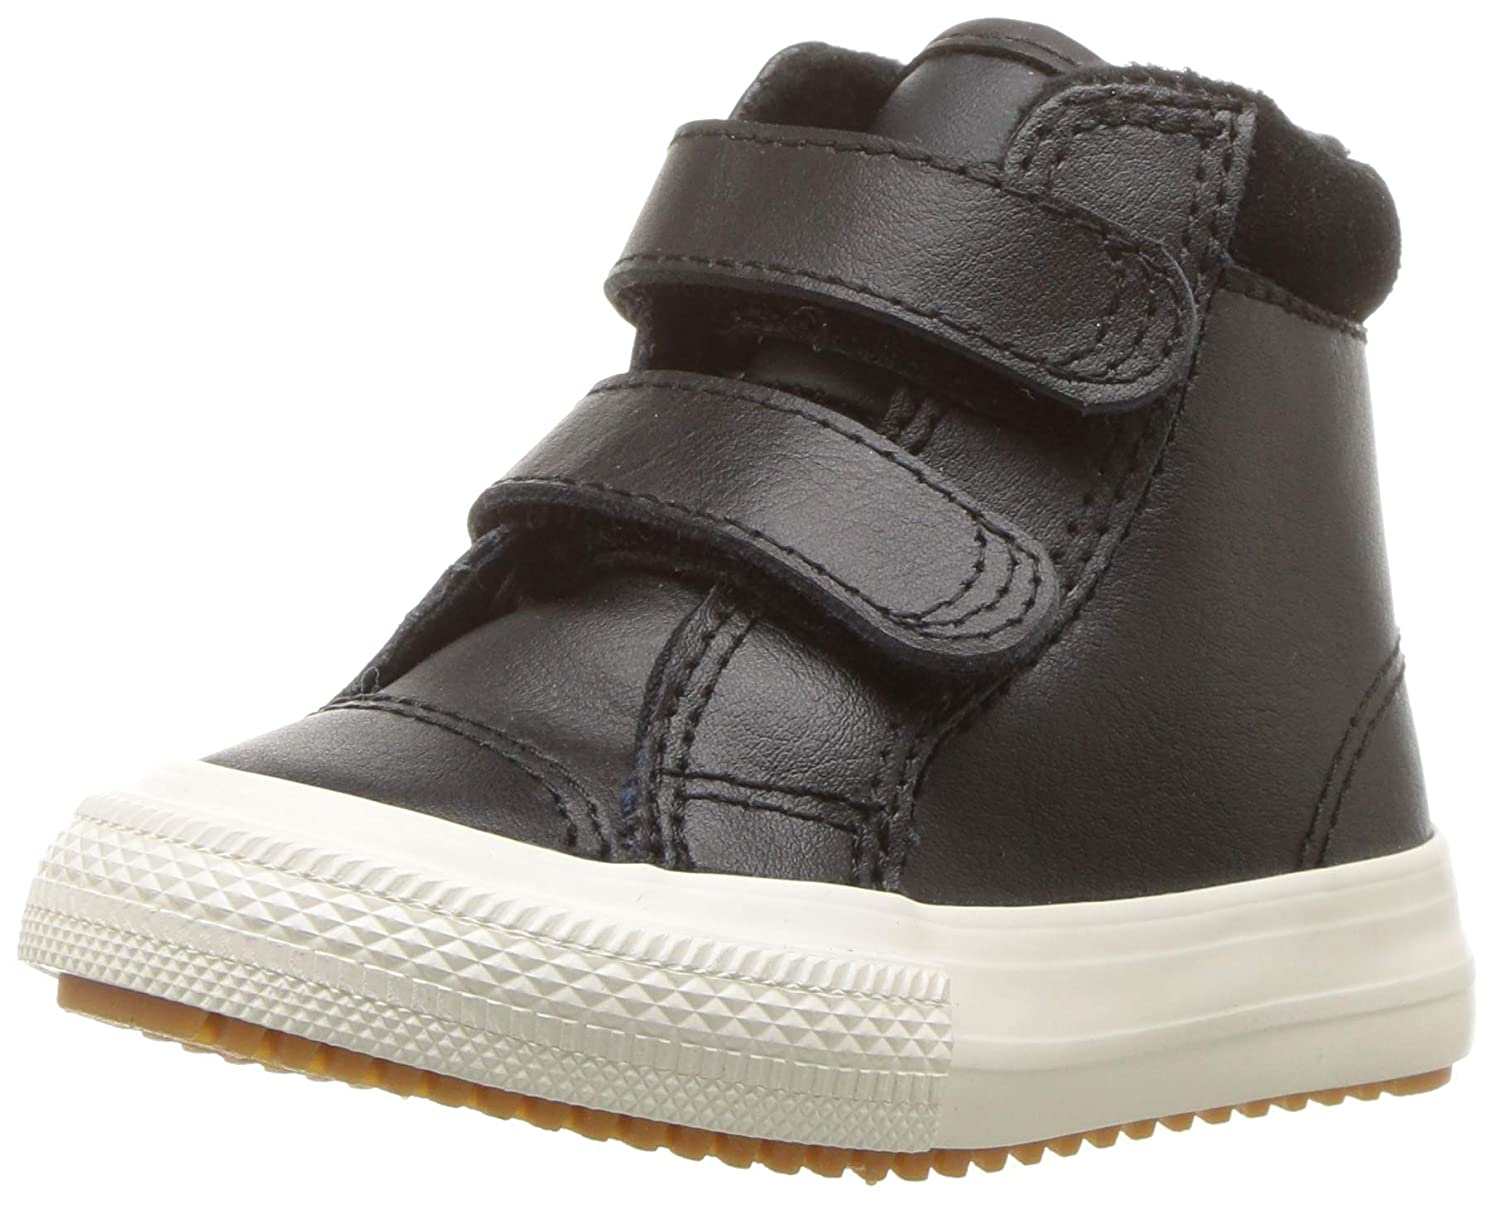 80e5f500519e Converse Unisex Babies  Chuck Taylor All Star 2v Pc Boot Low-Top Sneakers